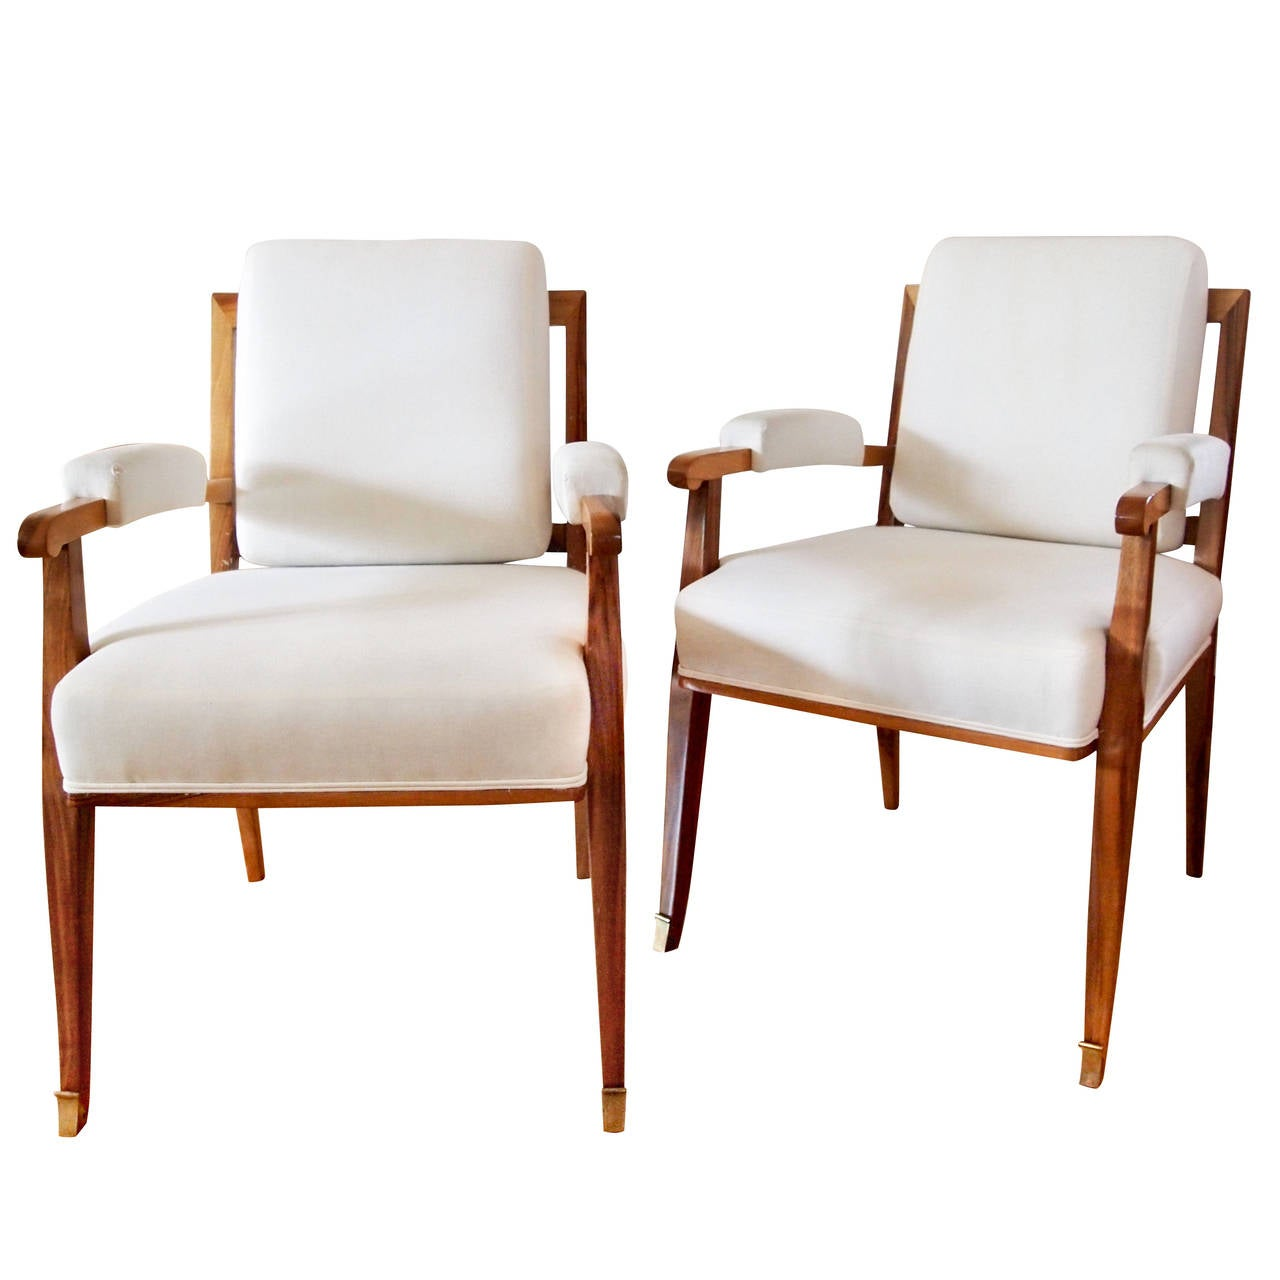 side chairs by jules leleu at 1stdibs